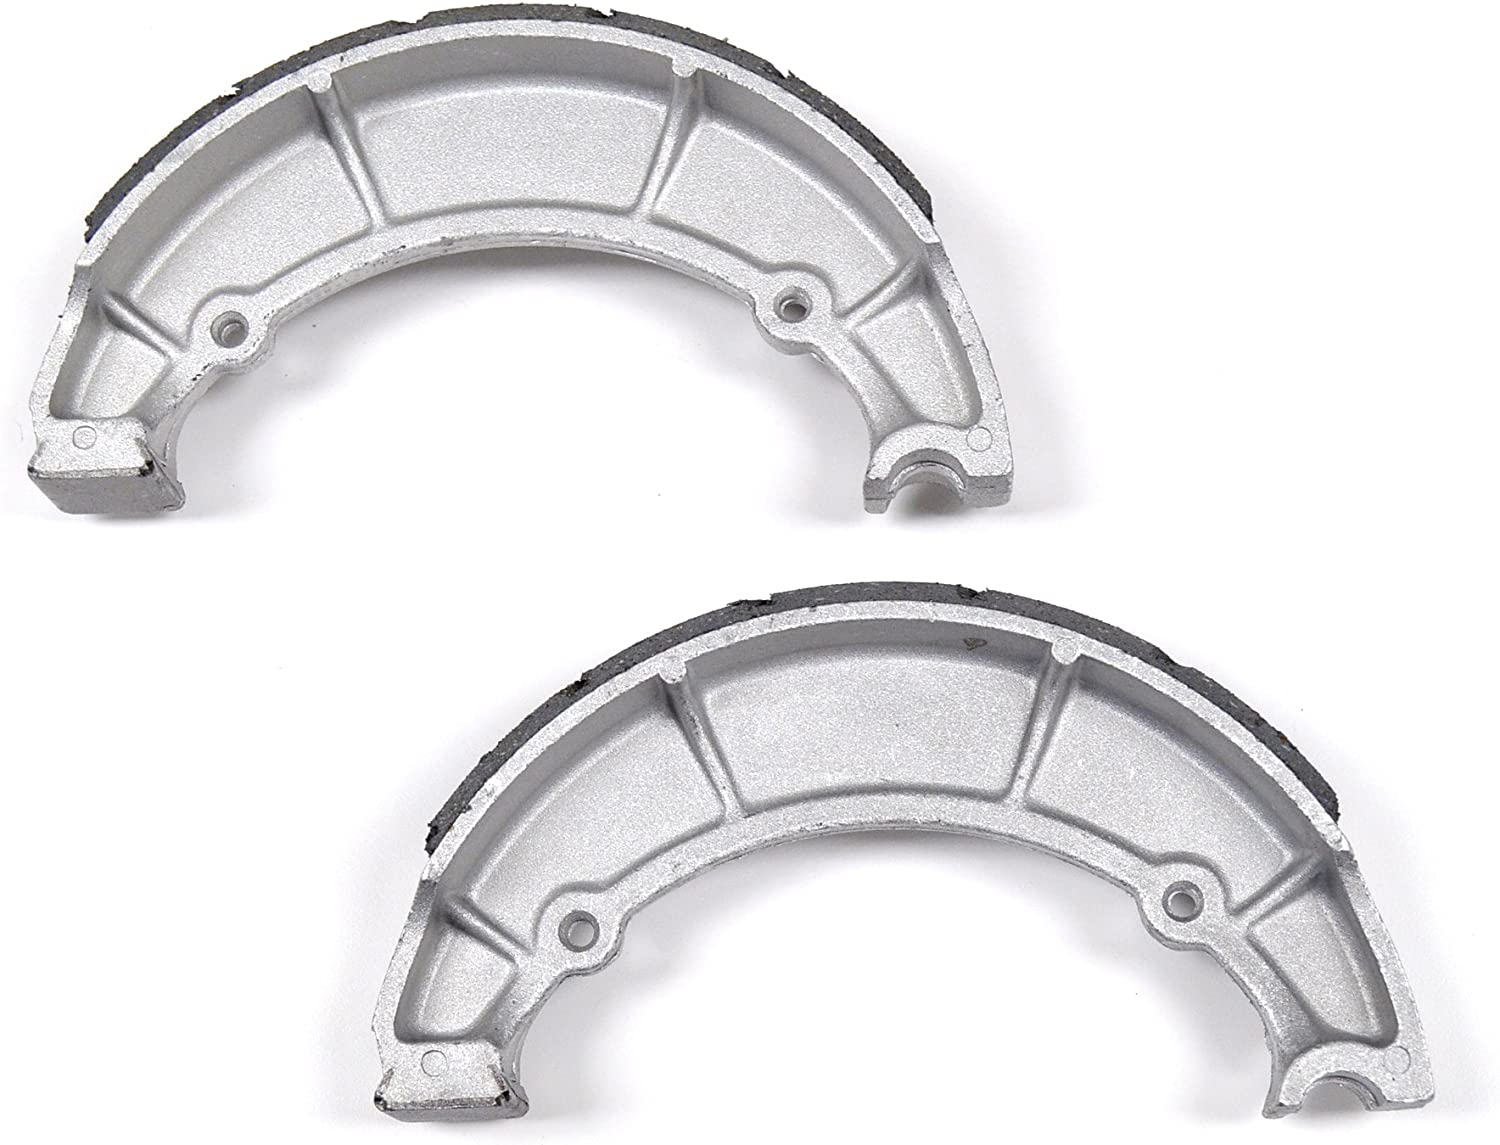 Yamaha XJ650 RJ Seca 1982 Rear Grooved Brake Shoes by Niche Cycle Supply